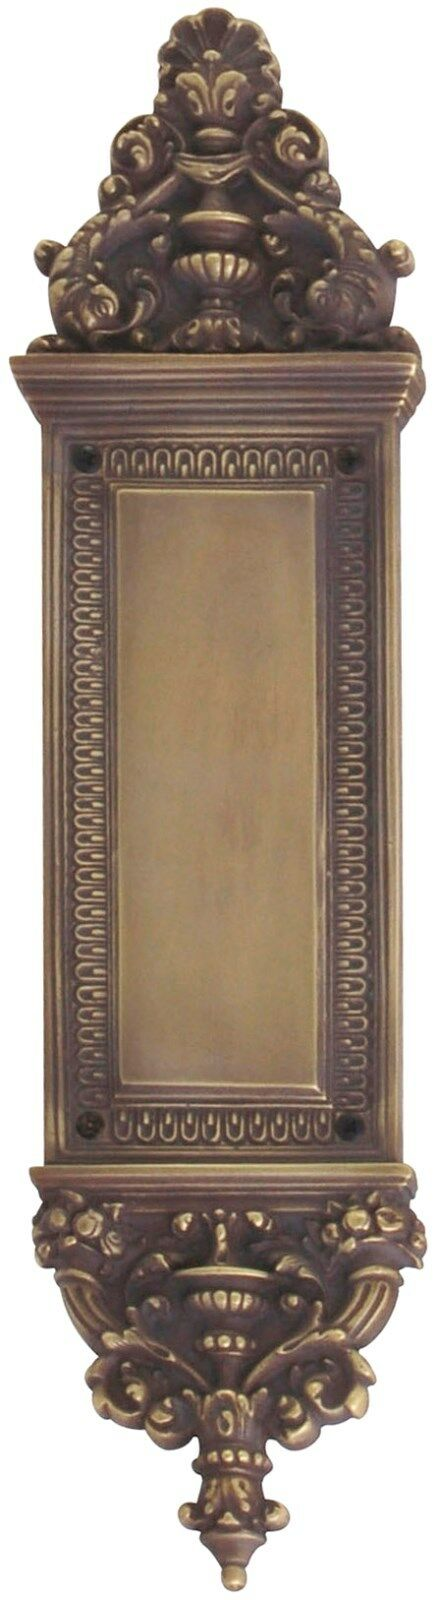 Renaissance Aged Brass Door Push Plates & brass screws, 3-5/8 in. X 14-3/4 in.